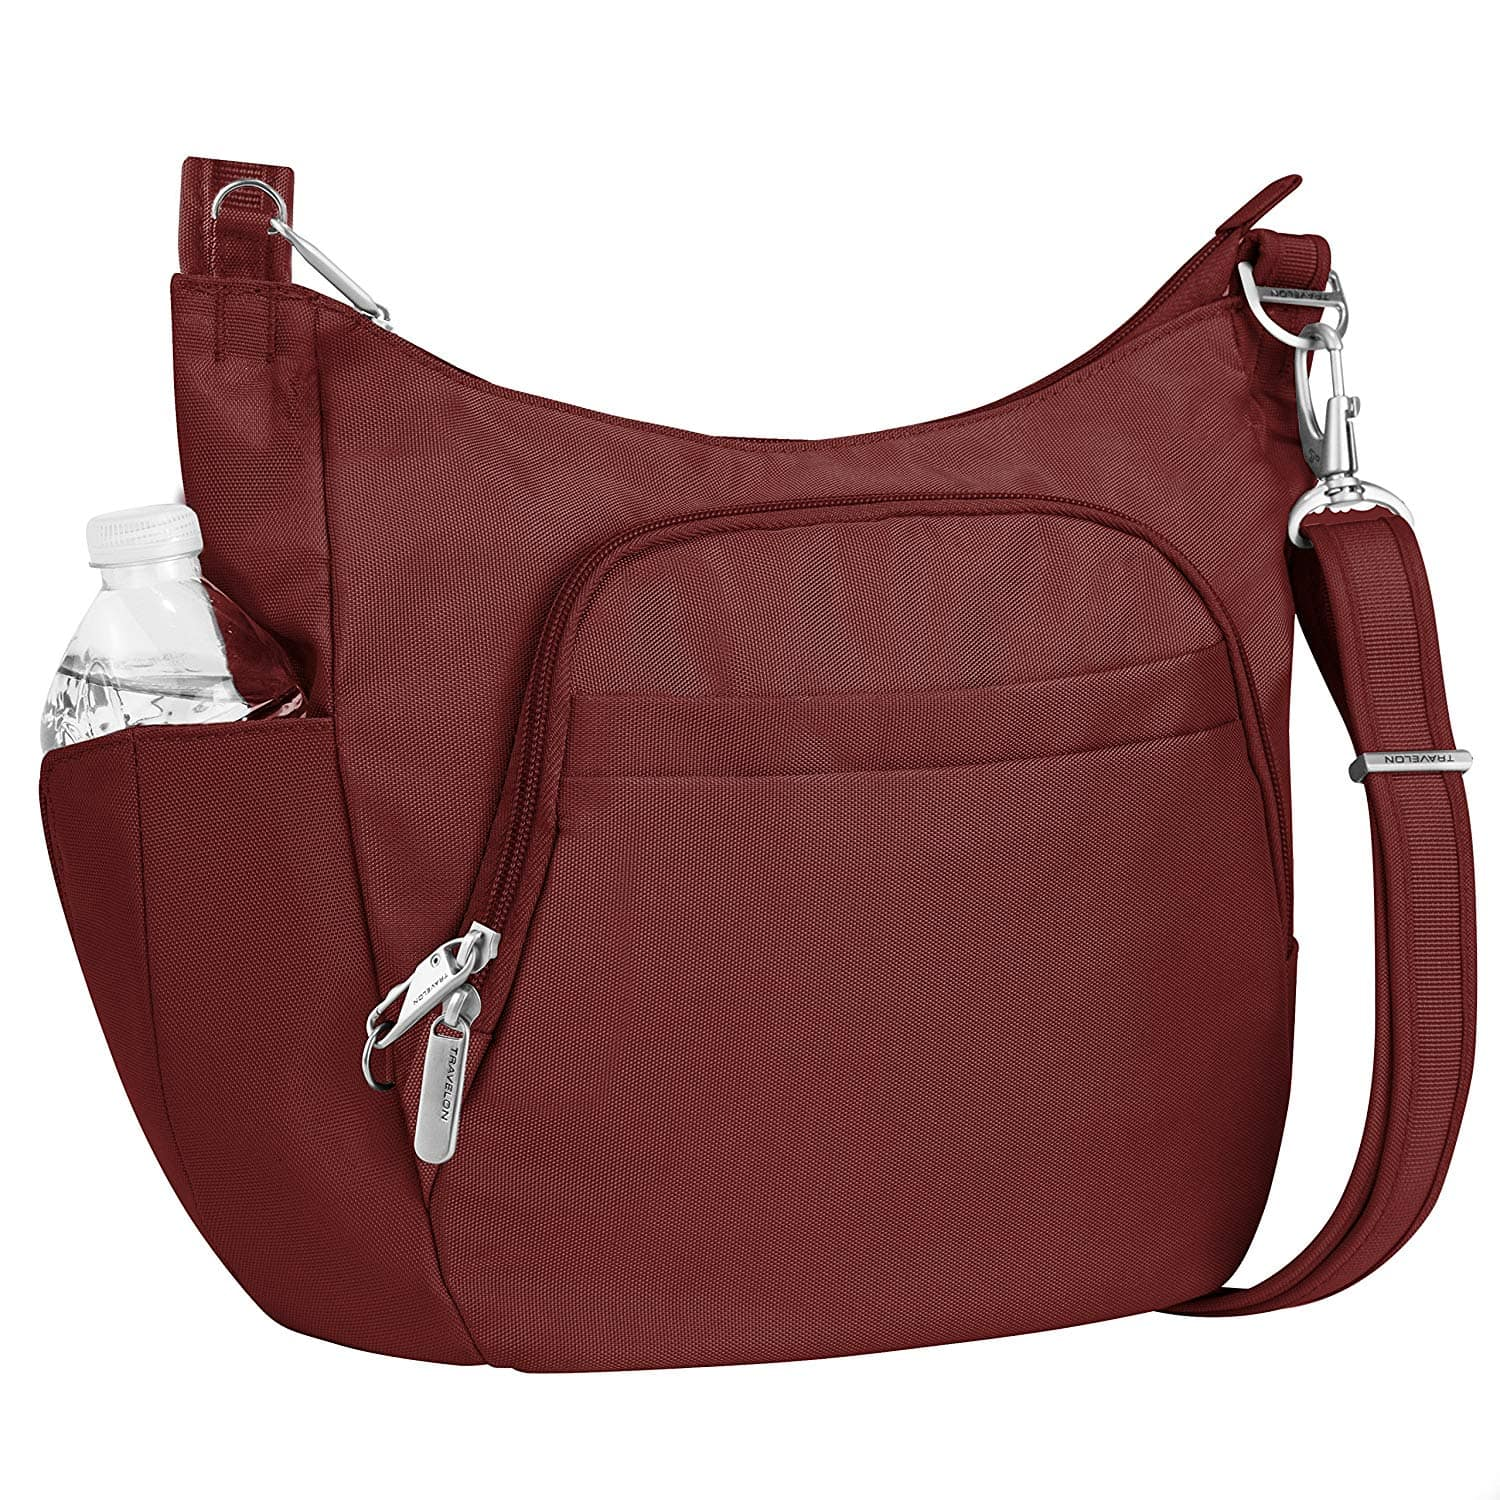 TravelOn Anti-Theft Poly Crossbody Bucket Tote Bag in Wine $36 at Home Depot/Amazon